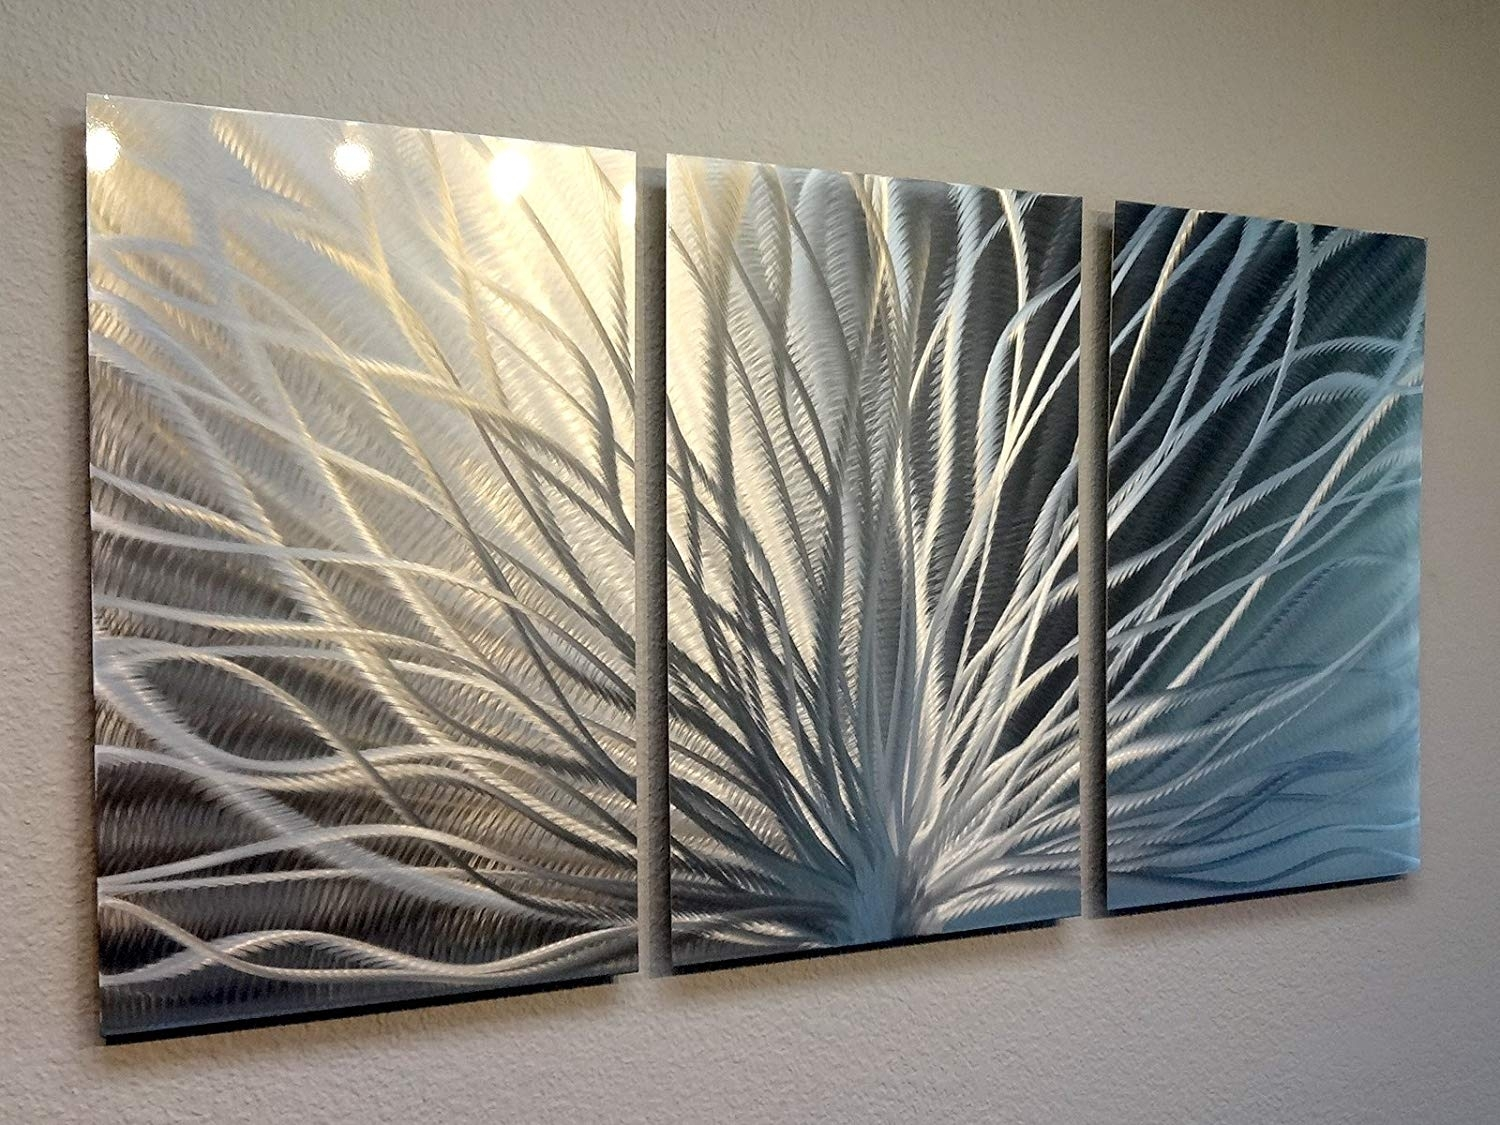 Amazon: Miles Shay Metal Wall Art, Modern Home Decor, Abstract Inside Contemporary Wall Art Decors (View 8 of 20)